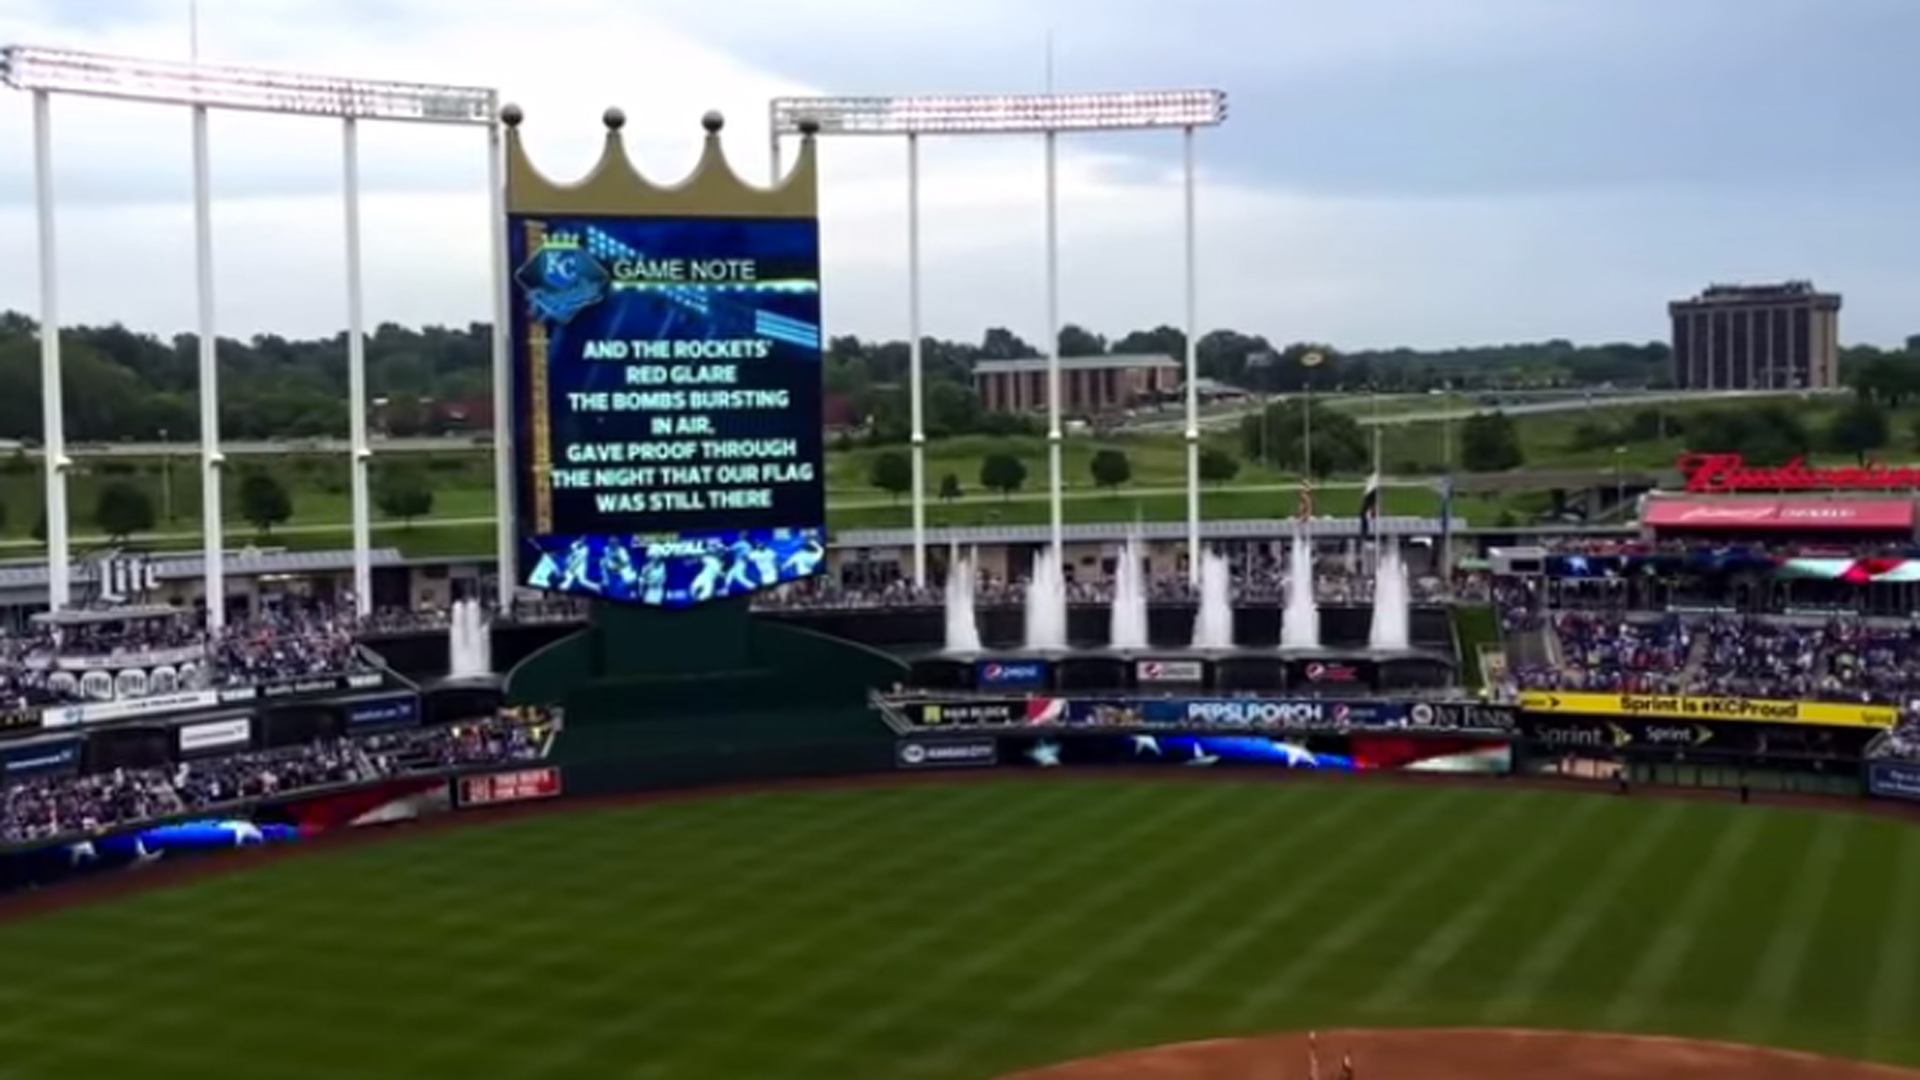 Royals fan sing national anthem after stadium PA system crashes